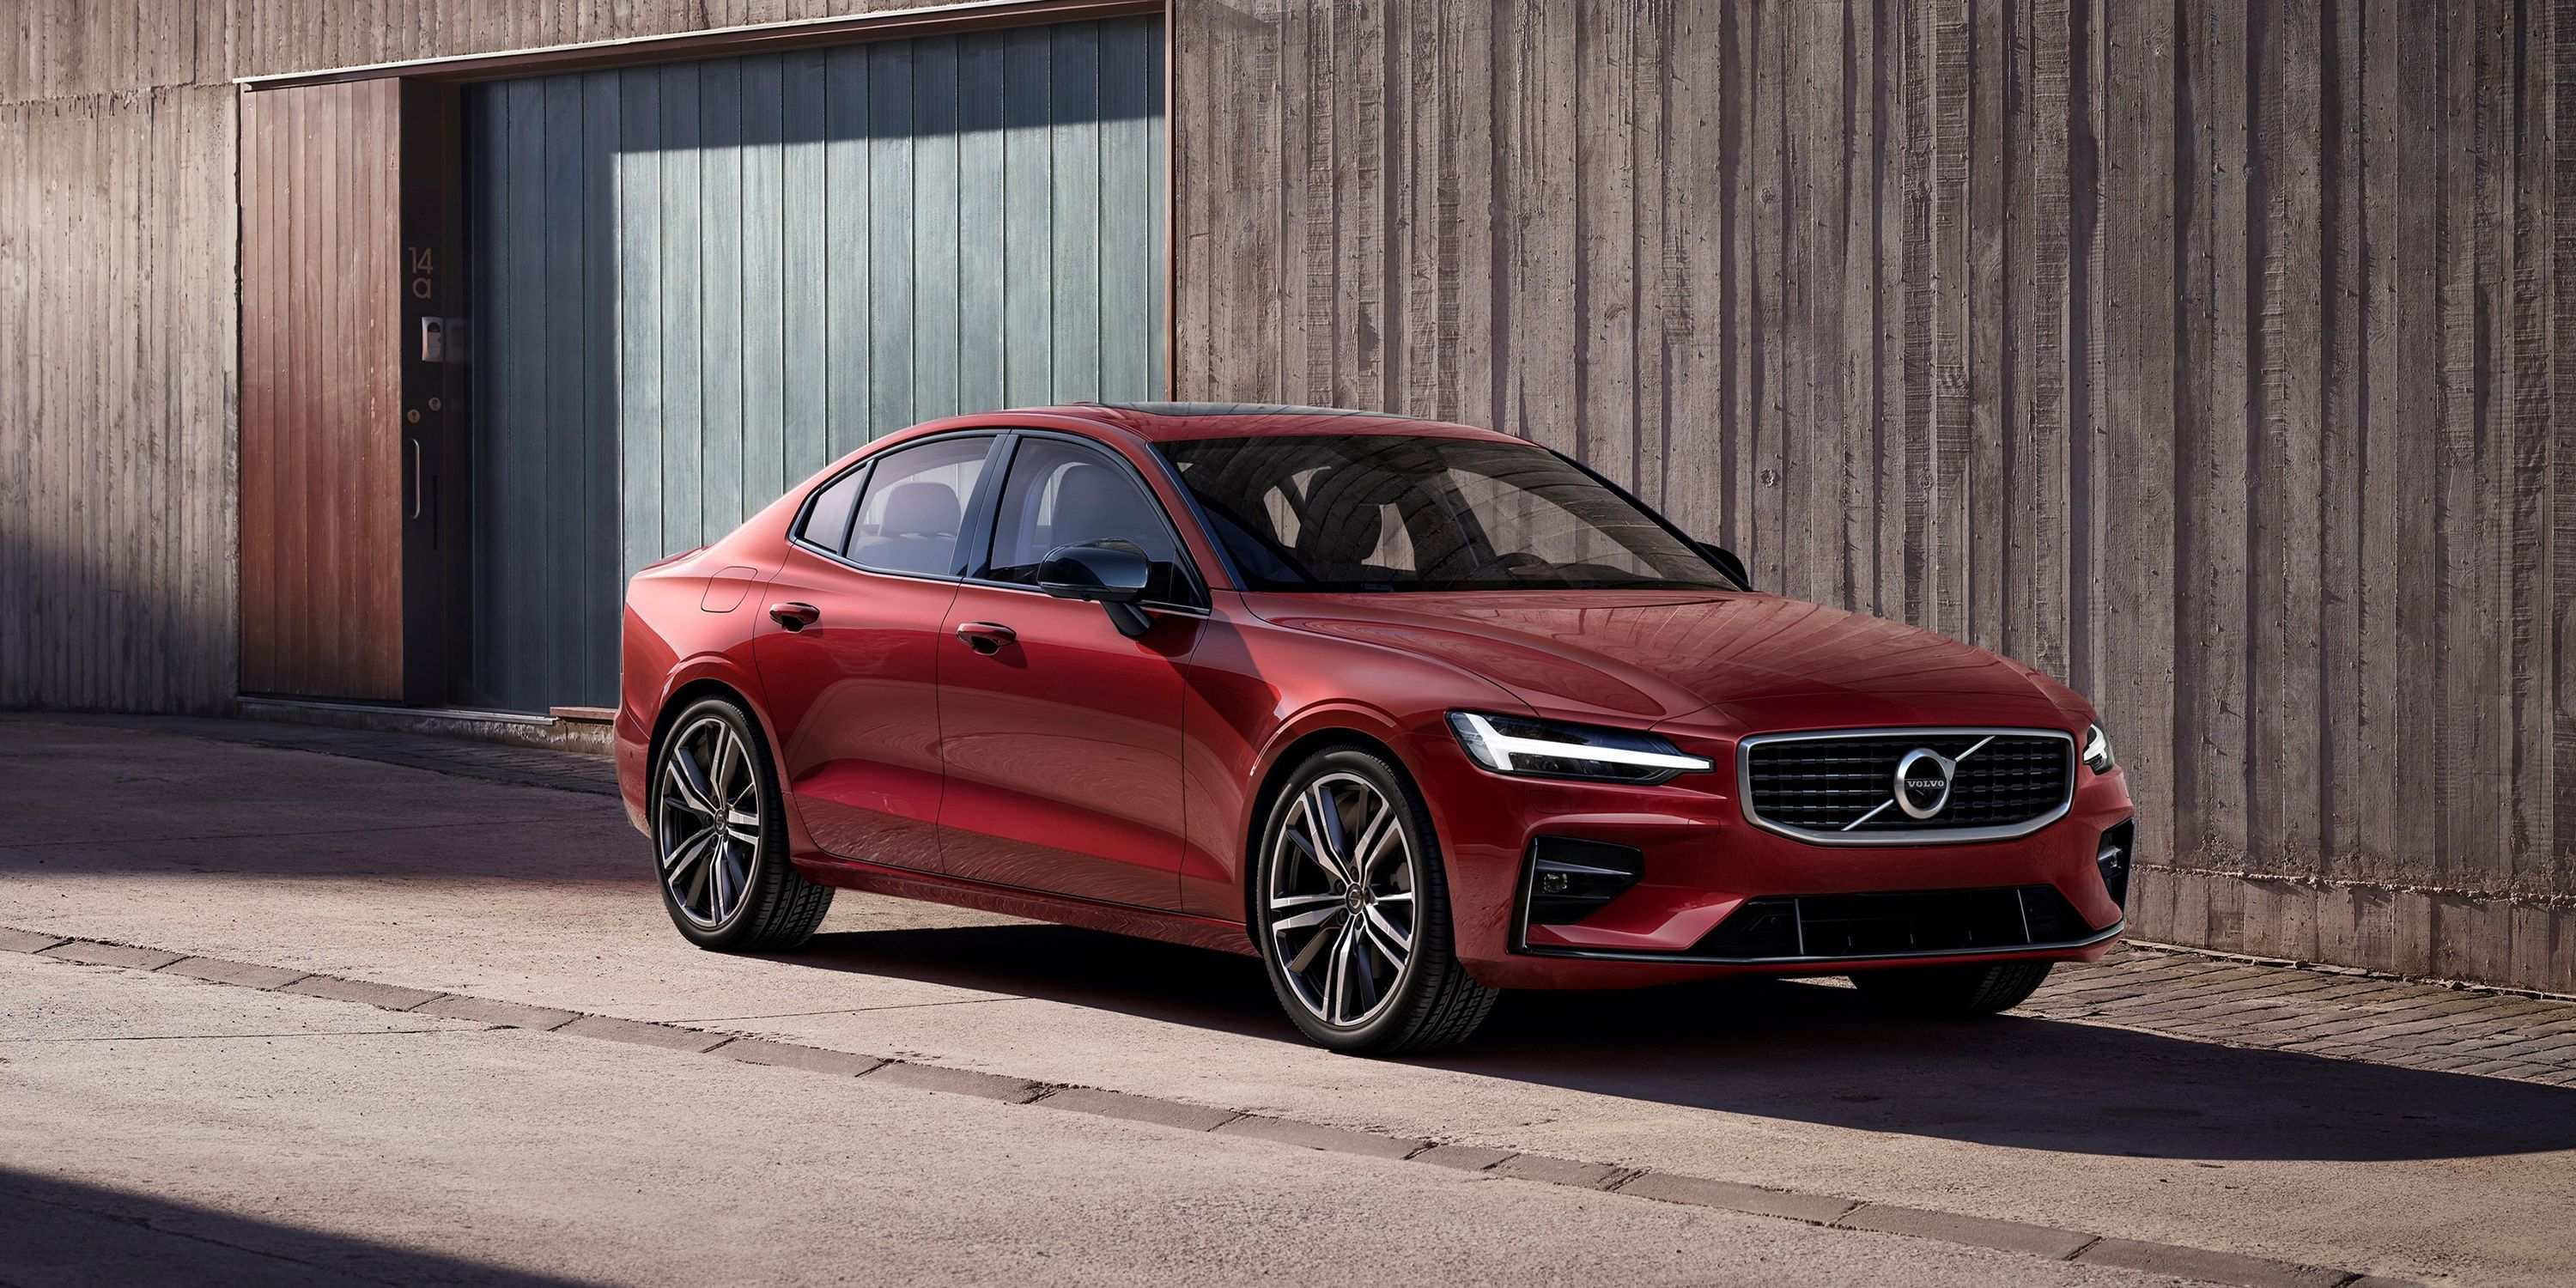 19 Great 2019 Volvo S60 Gas Mileage Spy Shoot Price for 2019 Volvo S60 Gas Mileage Spy Shoot